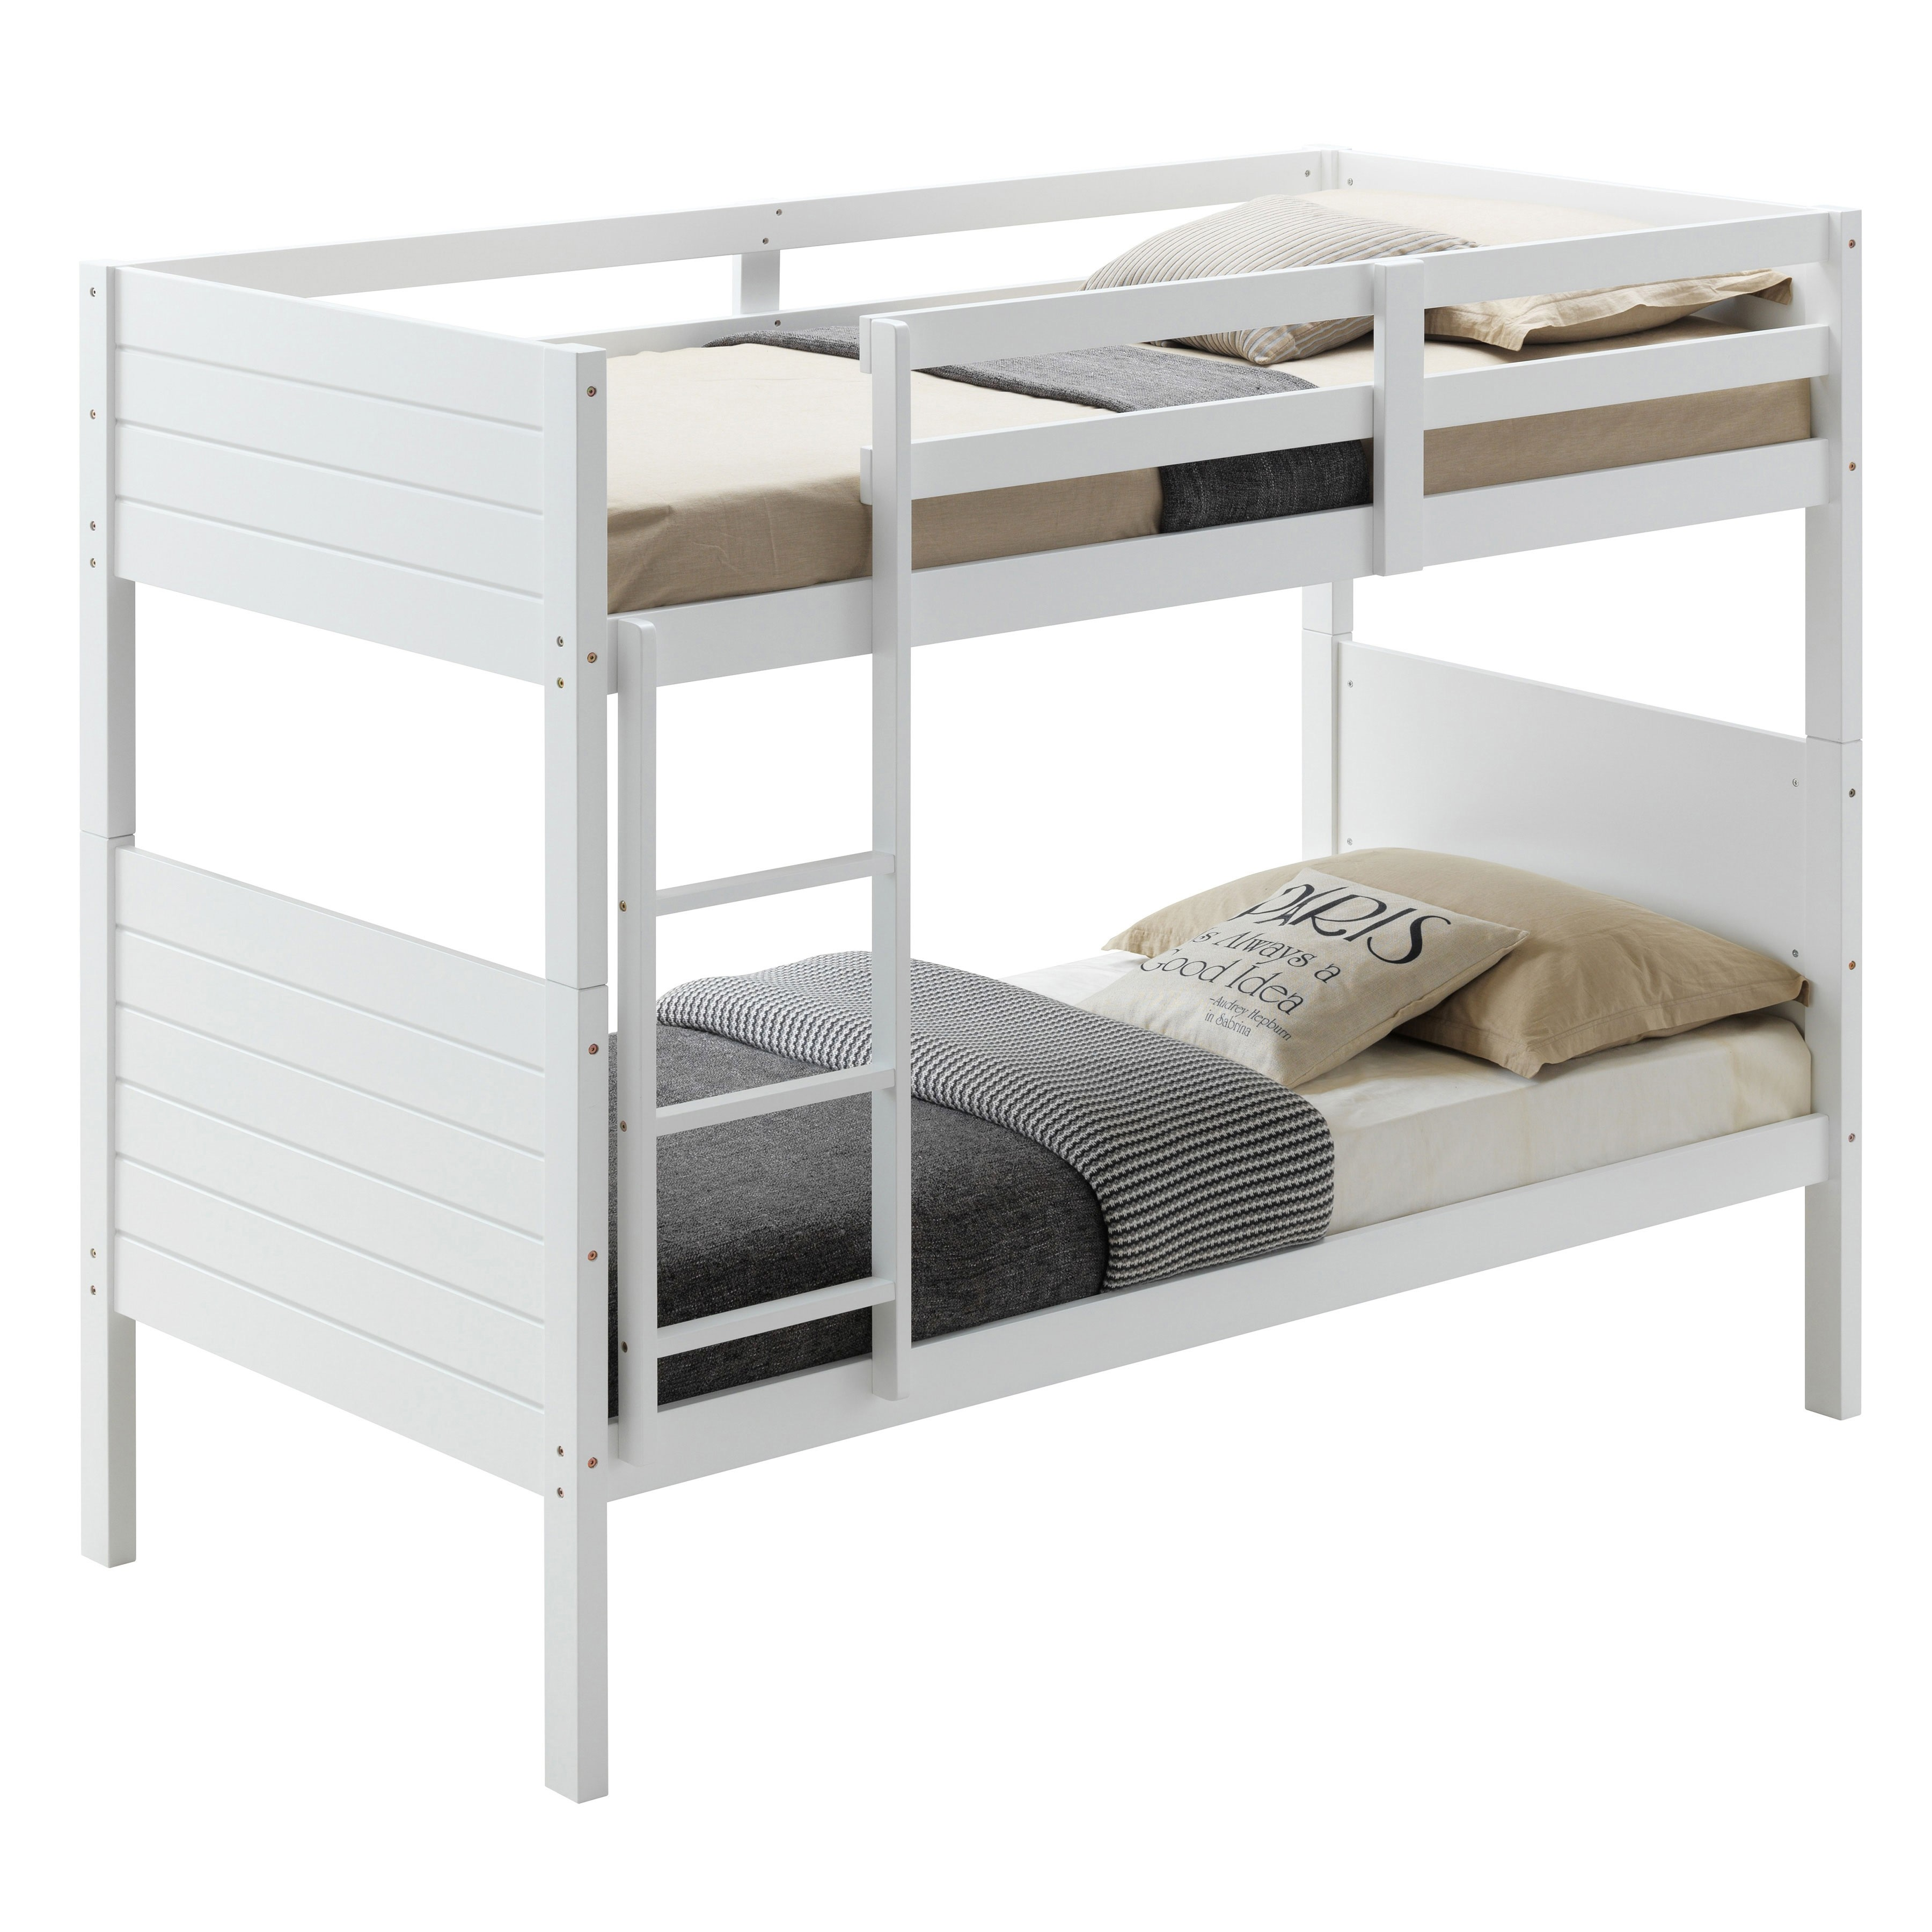 Welling Wooden Bunk Bed, Single, White